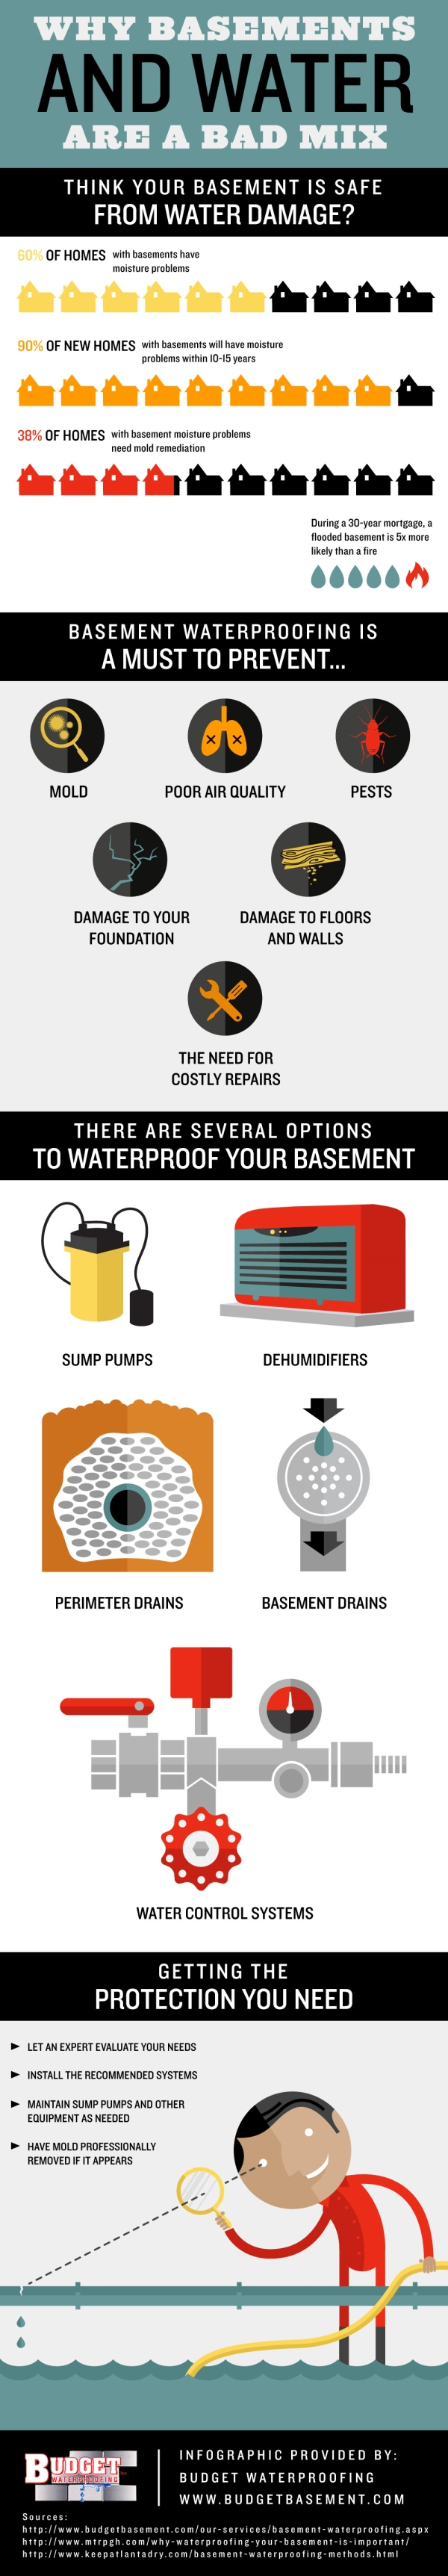 Why Basements and Water are a Bad Mix